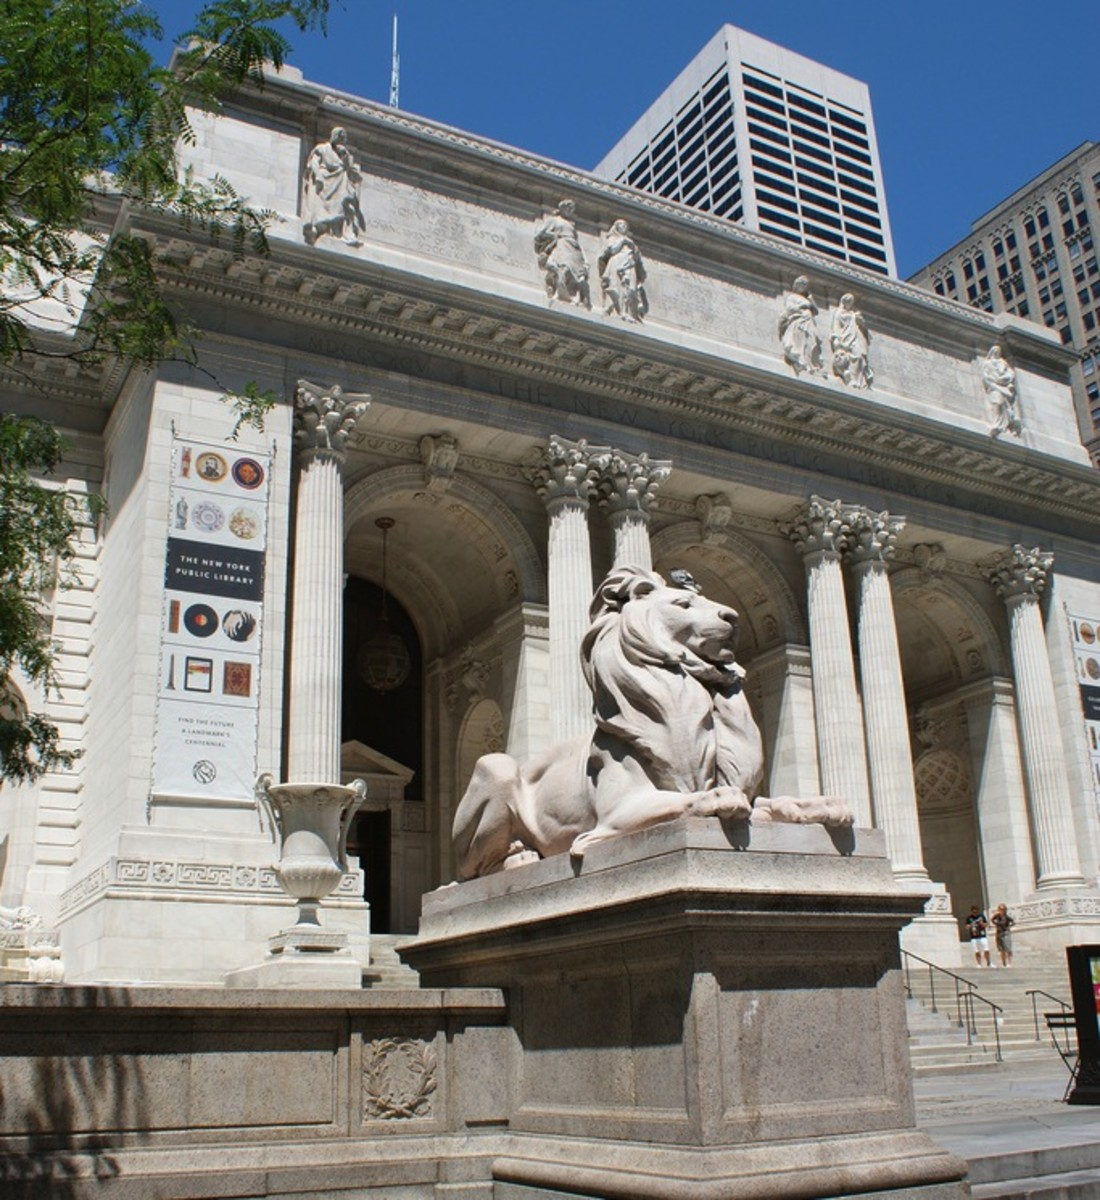 The New York Public Library, built in Beaux-Arts style between 1902 and 1911, includes ancient Greek influence in such elements as stylized Corinthian columns, high-relief sculpture in the frieze, and the extensive use of marble.